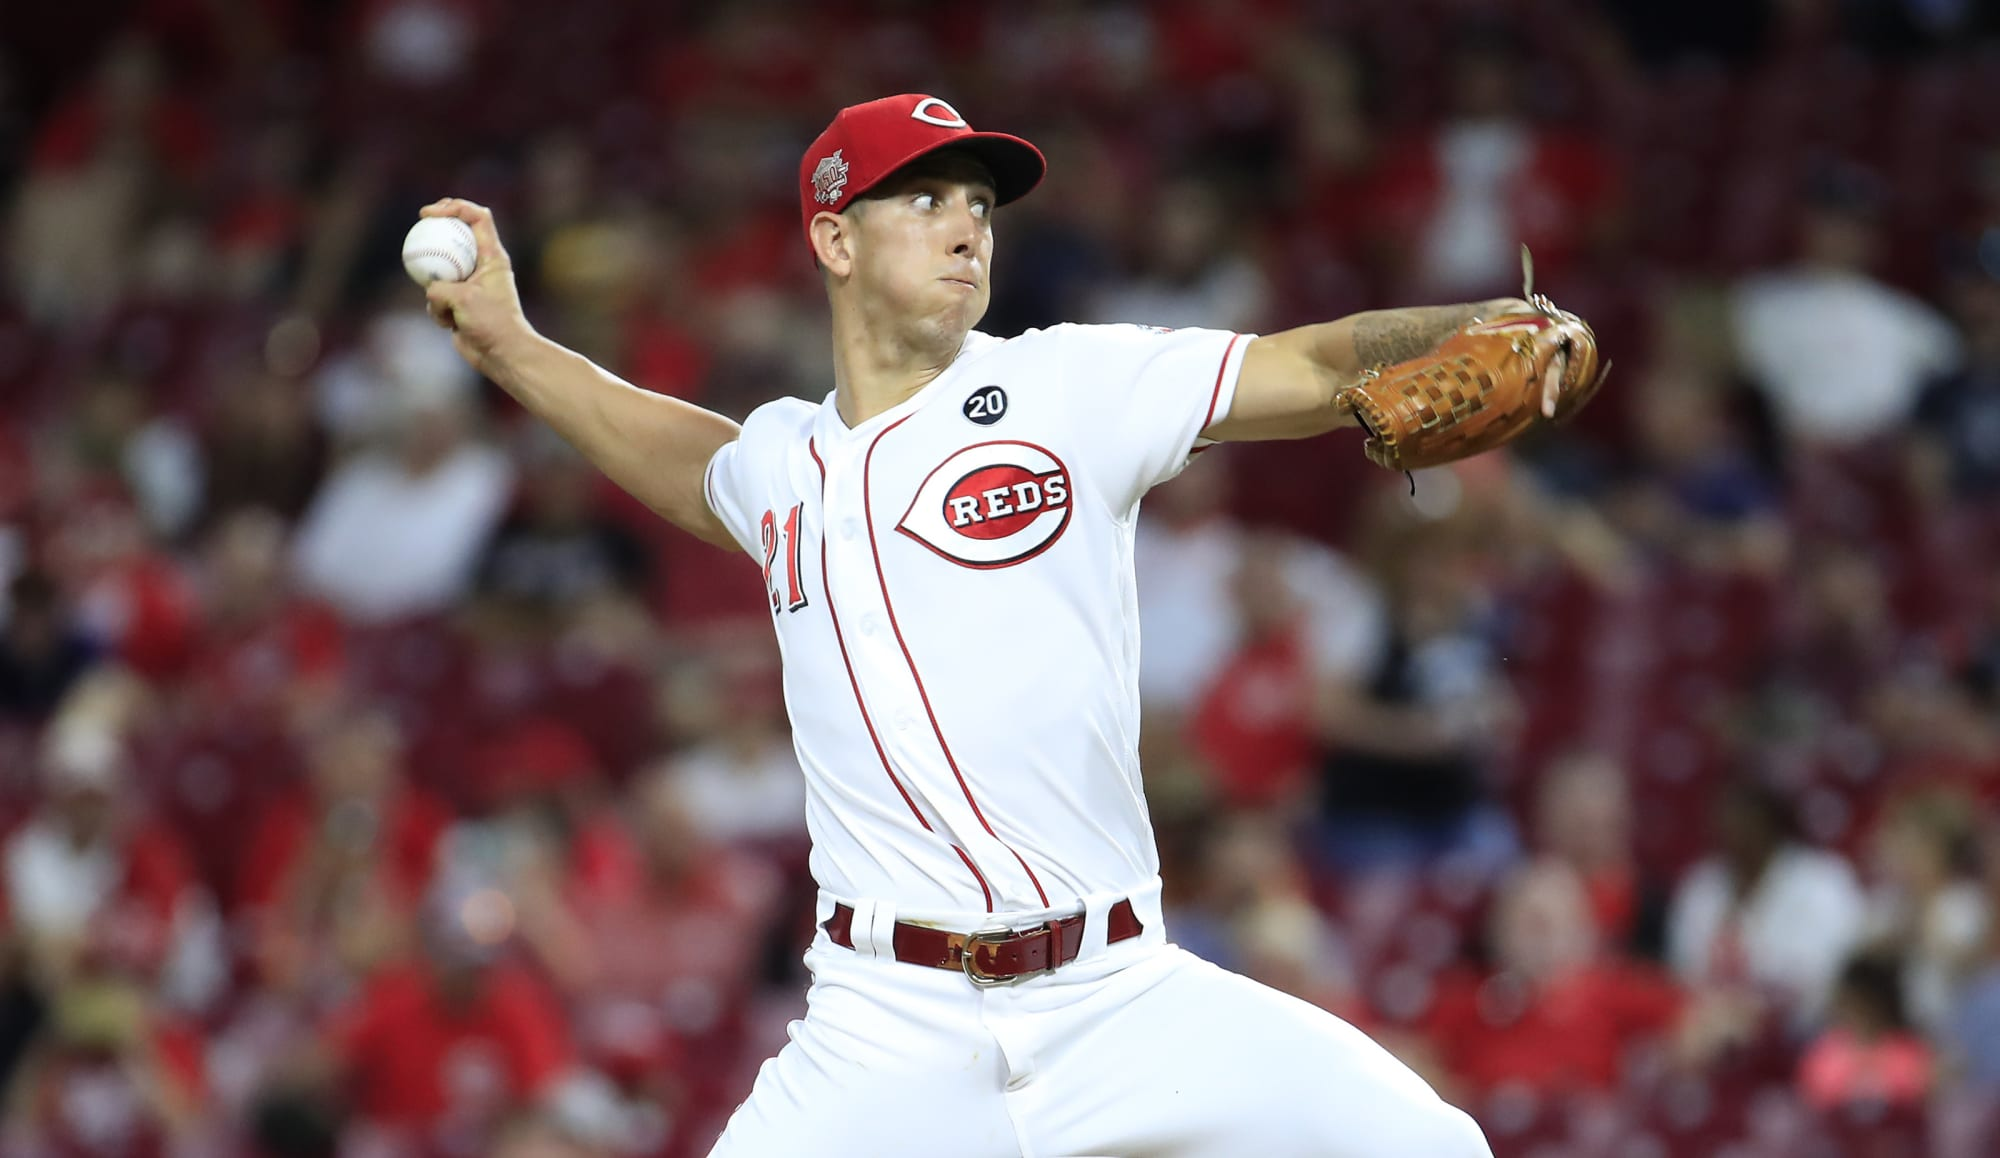 Cincinnati Reds: Michael Lorenzen's $4.4-million salary is a bargain